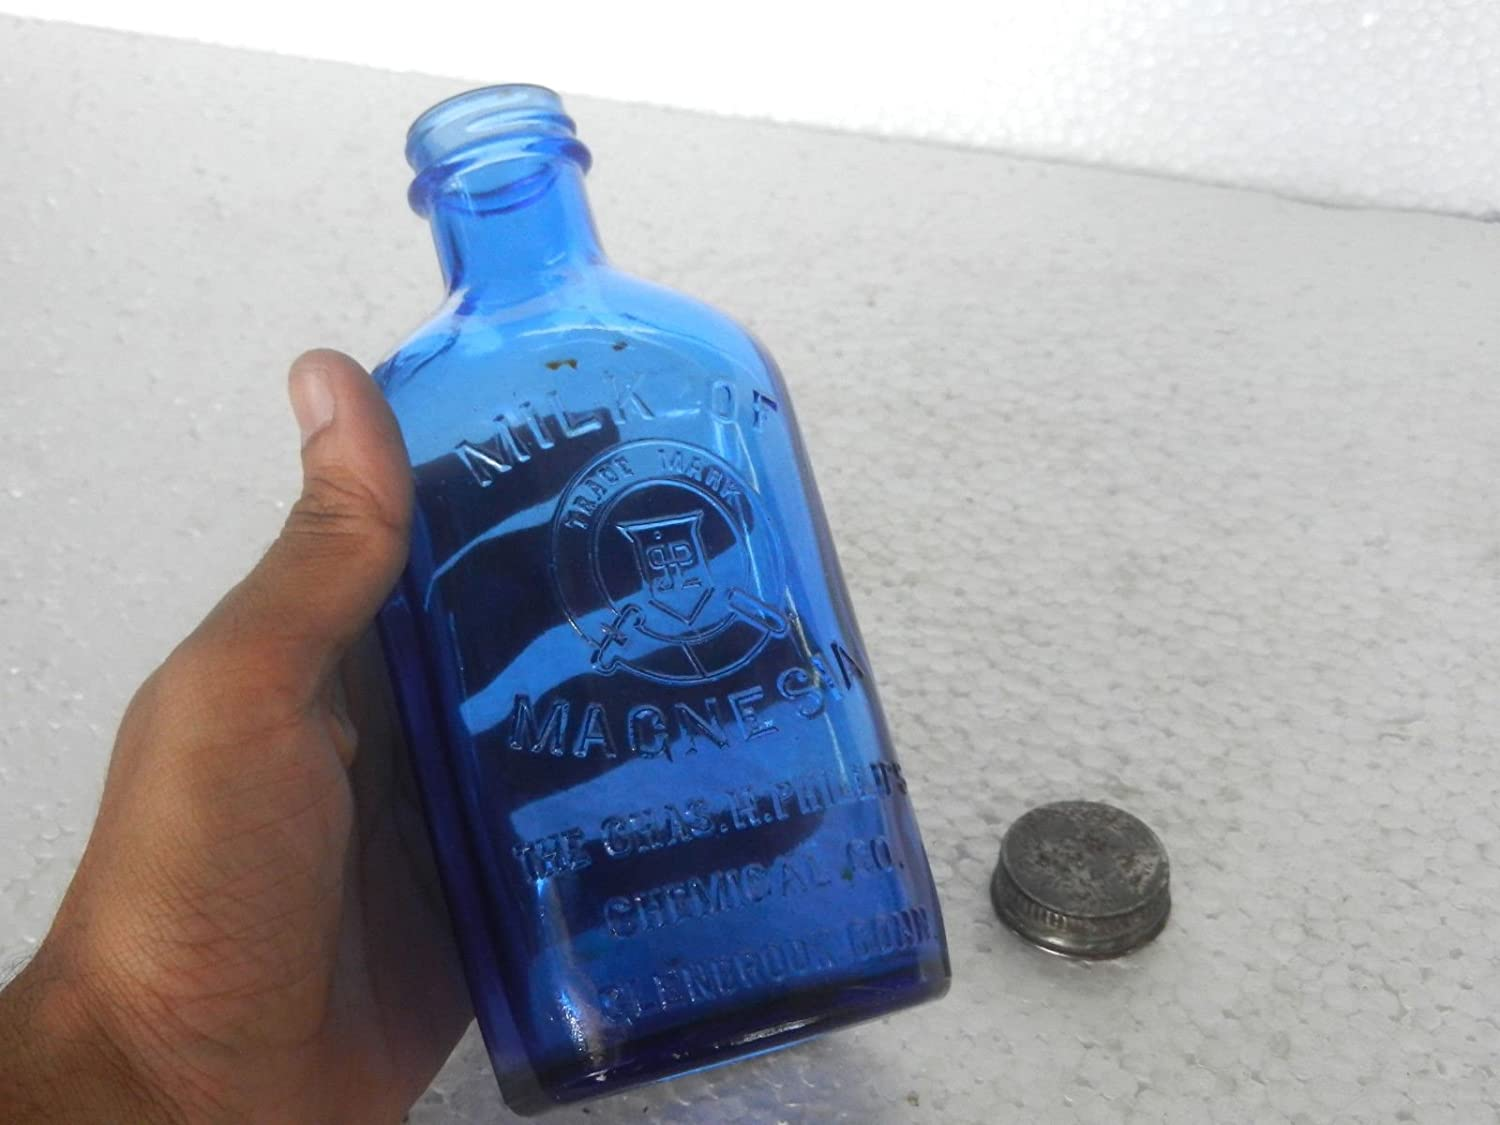 Vintage Phillips Milk Of Magnesia Glass Bottle, Original Cap: Amazon.es: Hogar